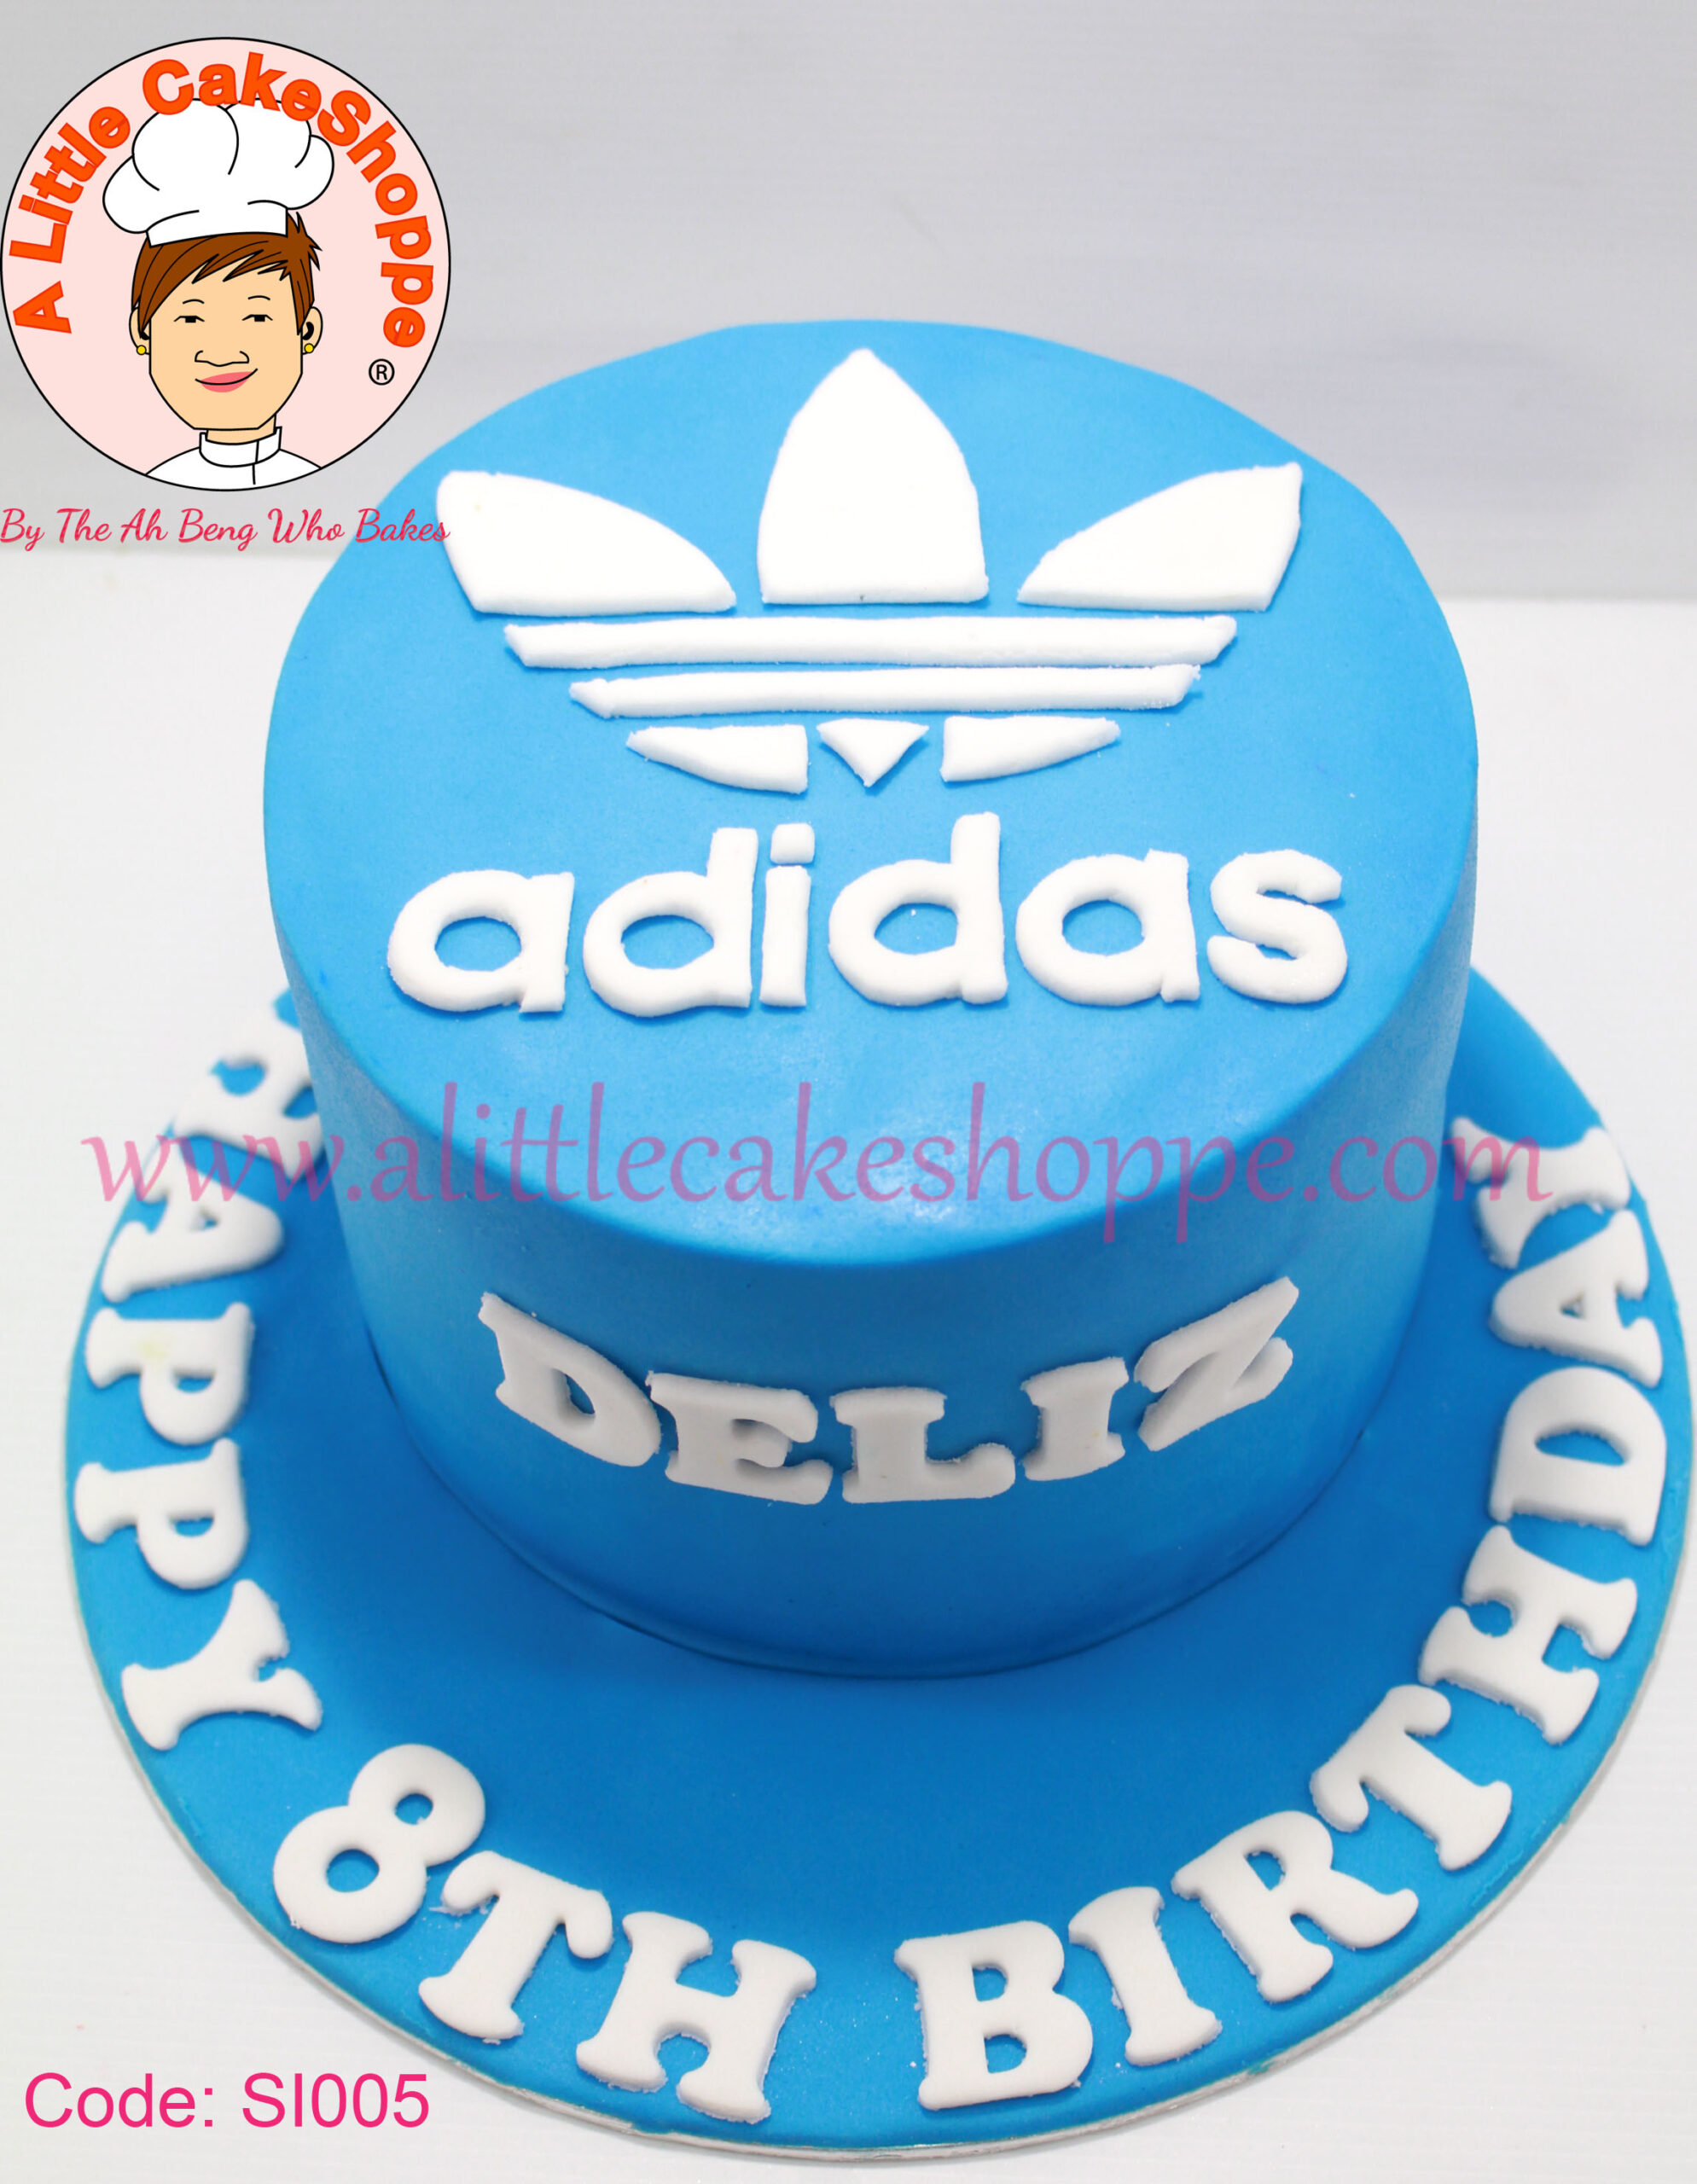 Best Customised Cake Singapore custom cake 2D 3D birthday cake cupcakes desserts wedding corporate events anniversary 1st birthday 21st birthday fondant fresh cream buttercream cakes alittlecakeshoppe a little cake shoppe compliments review singapore bakers SG cakeshop ah beng who bakes sports adidas